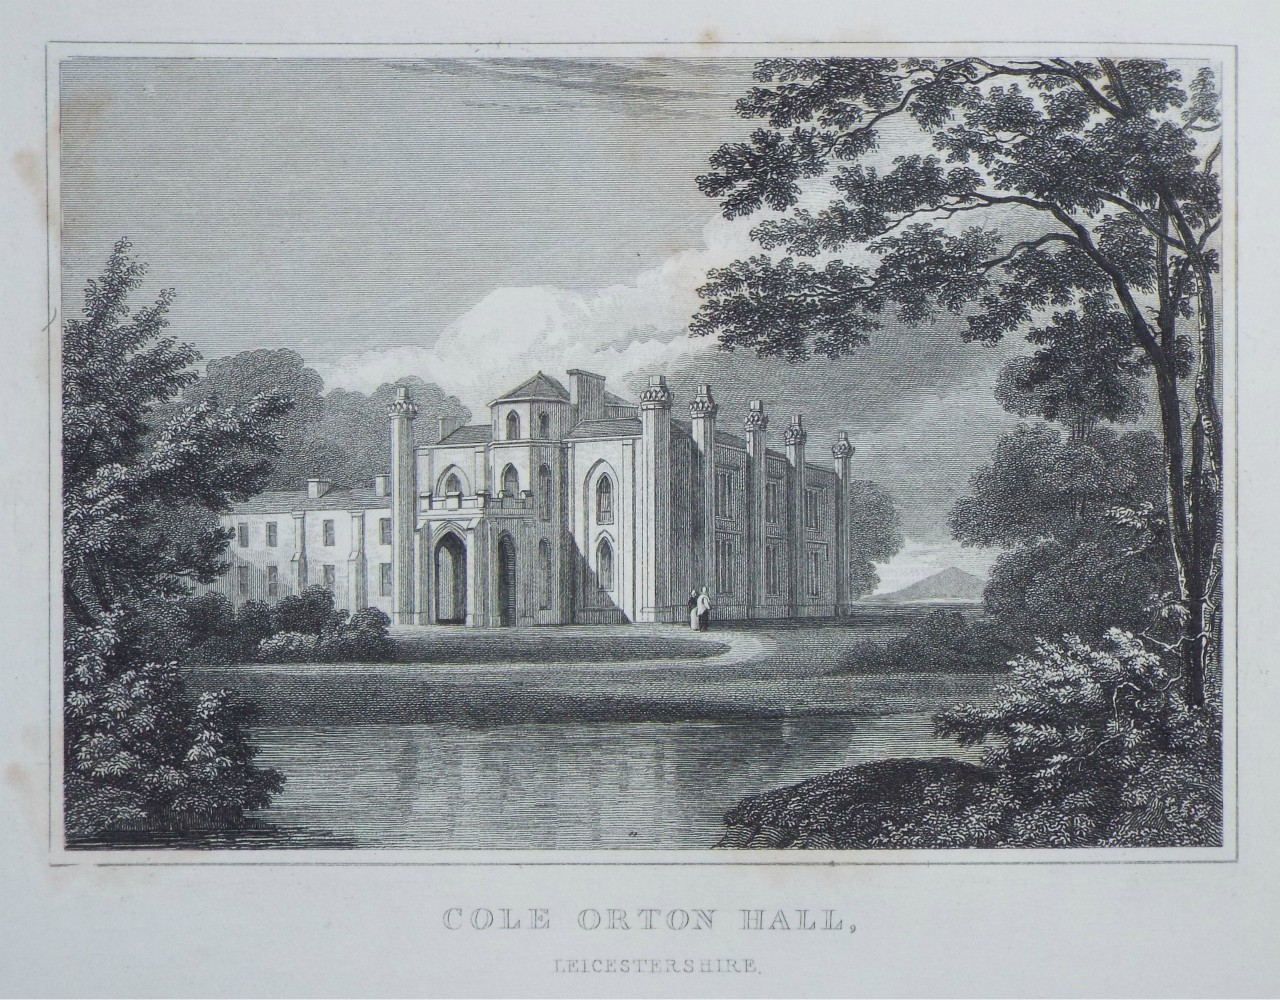 Print - Cole Orton Hall, Leicestershire. - Radclyffe